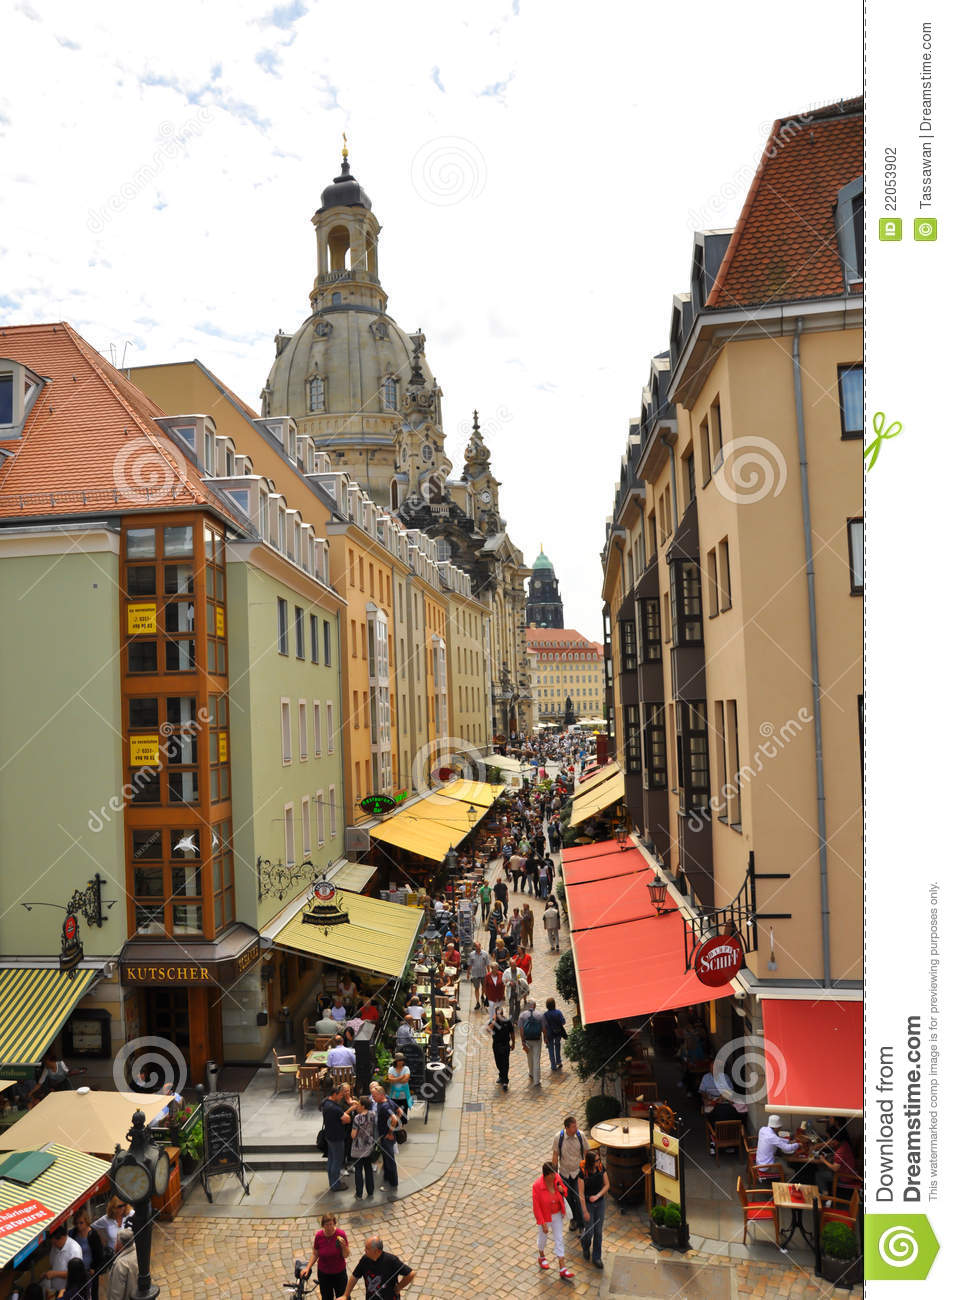 Souvenir Shop Street In Old Town DresdenGermany Editorial Photography - Image 22053902